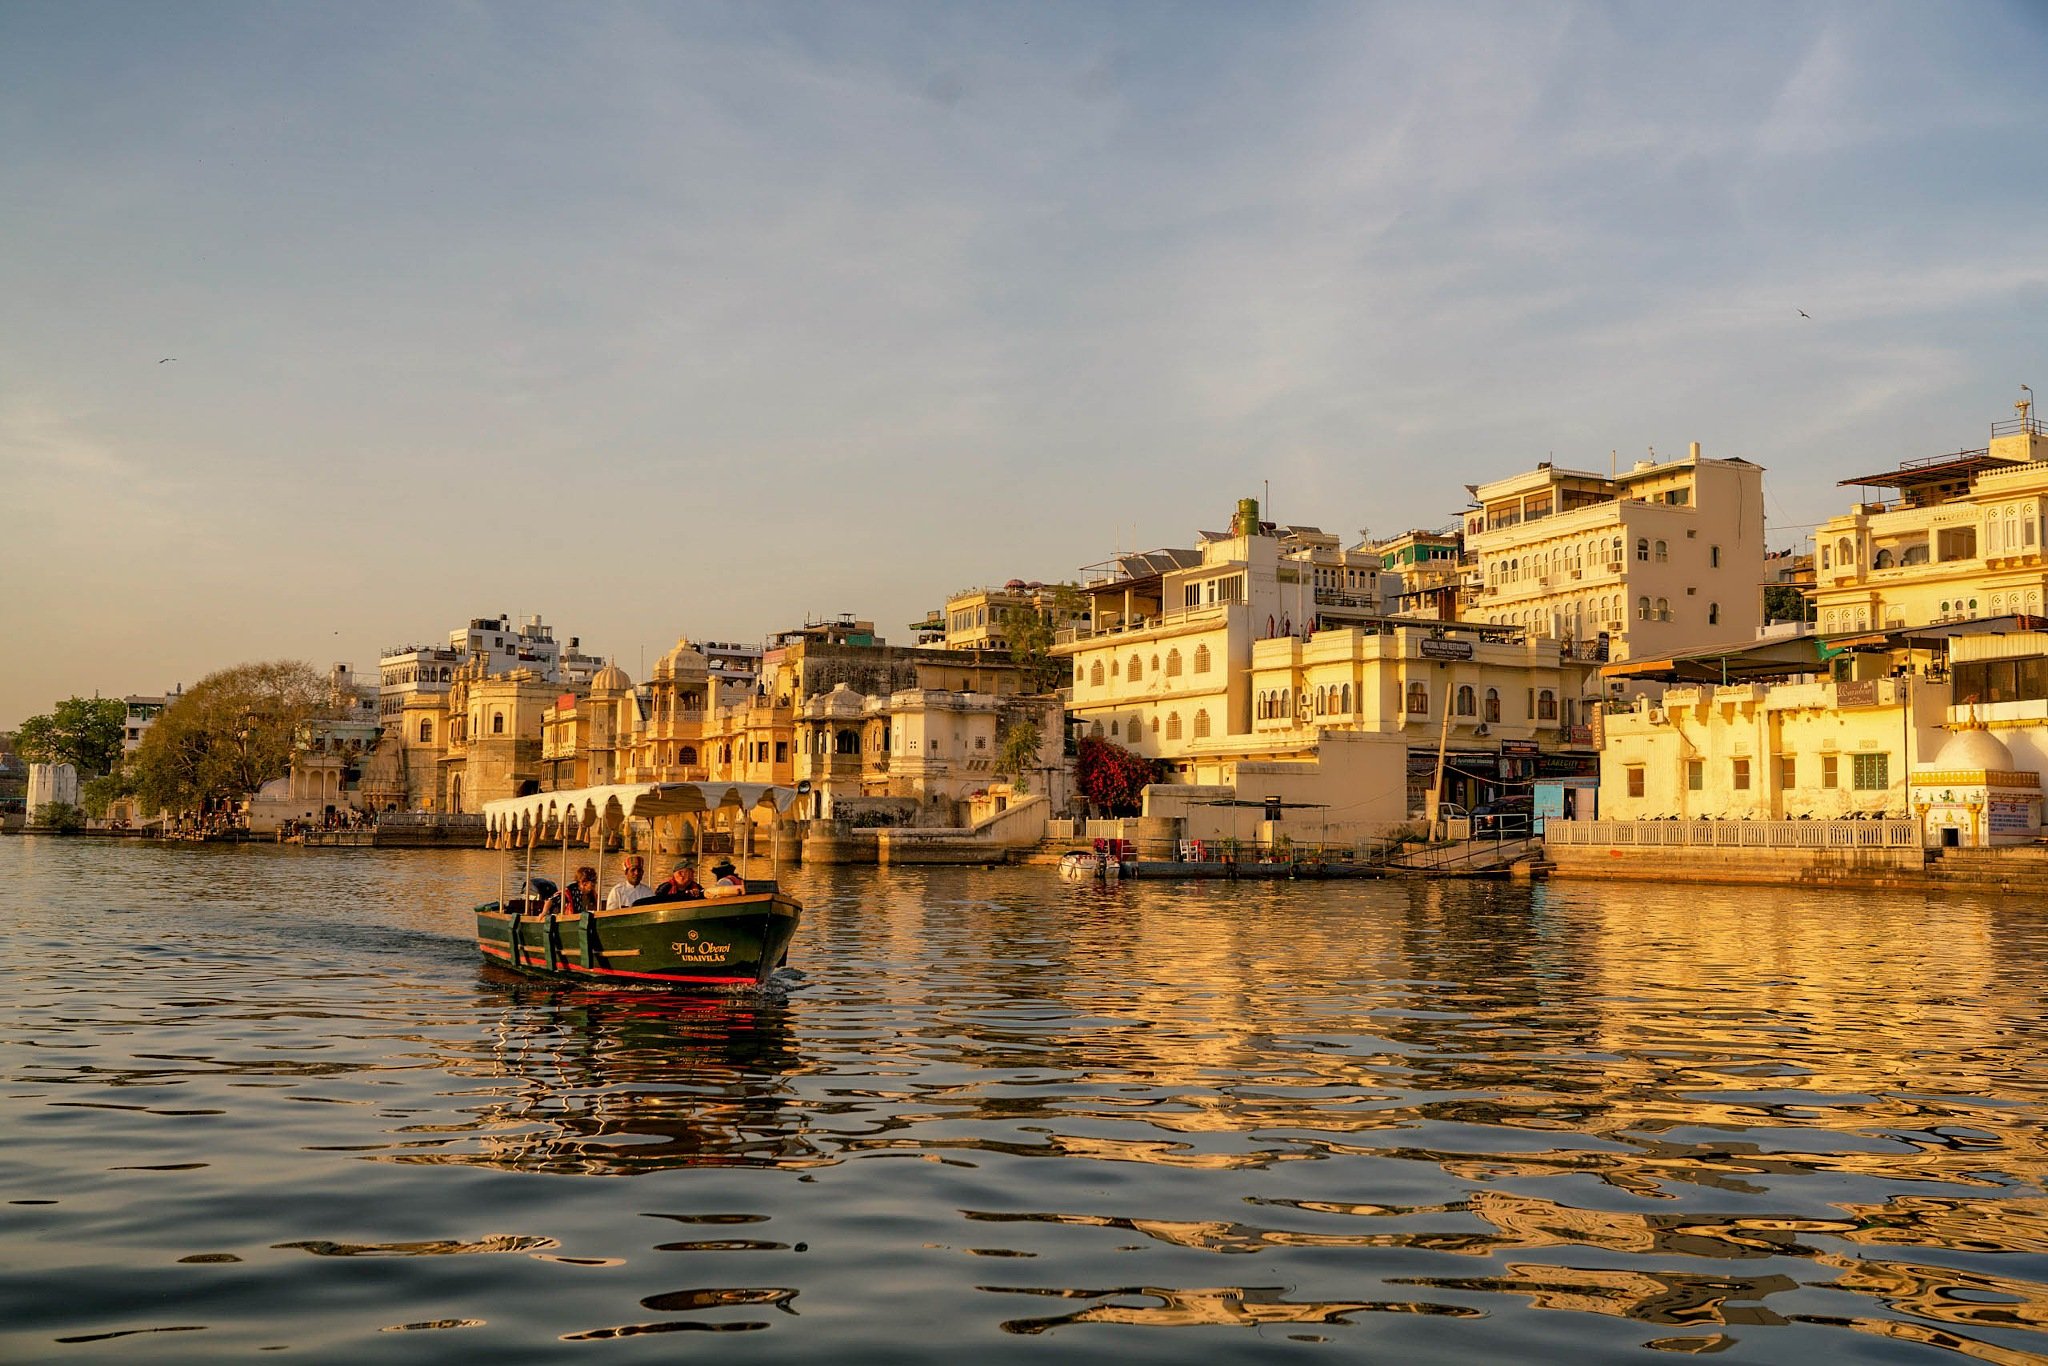 Boat on a lake, Udaipur, India. by Peter Holton